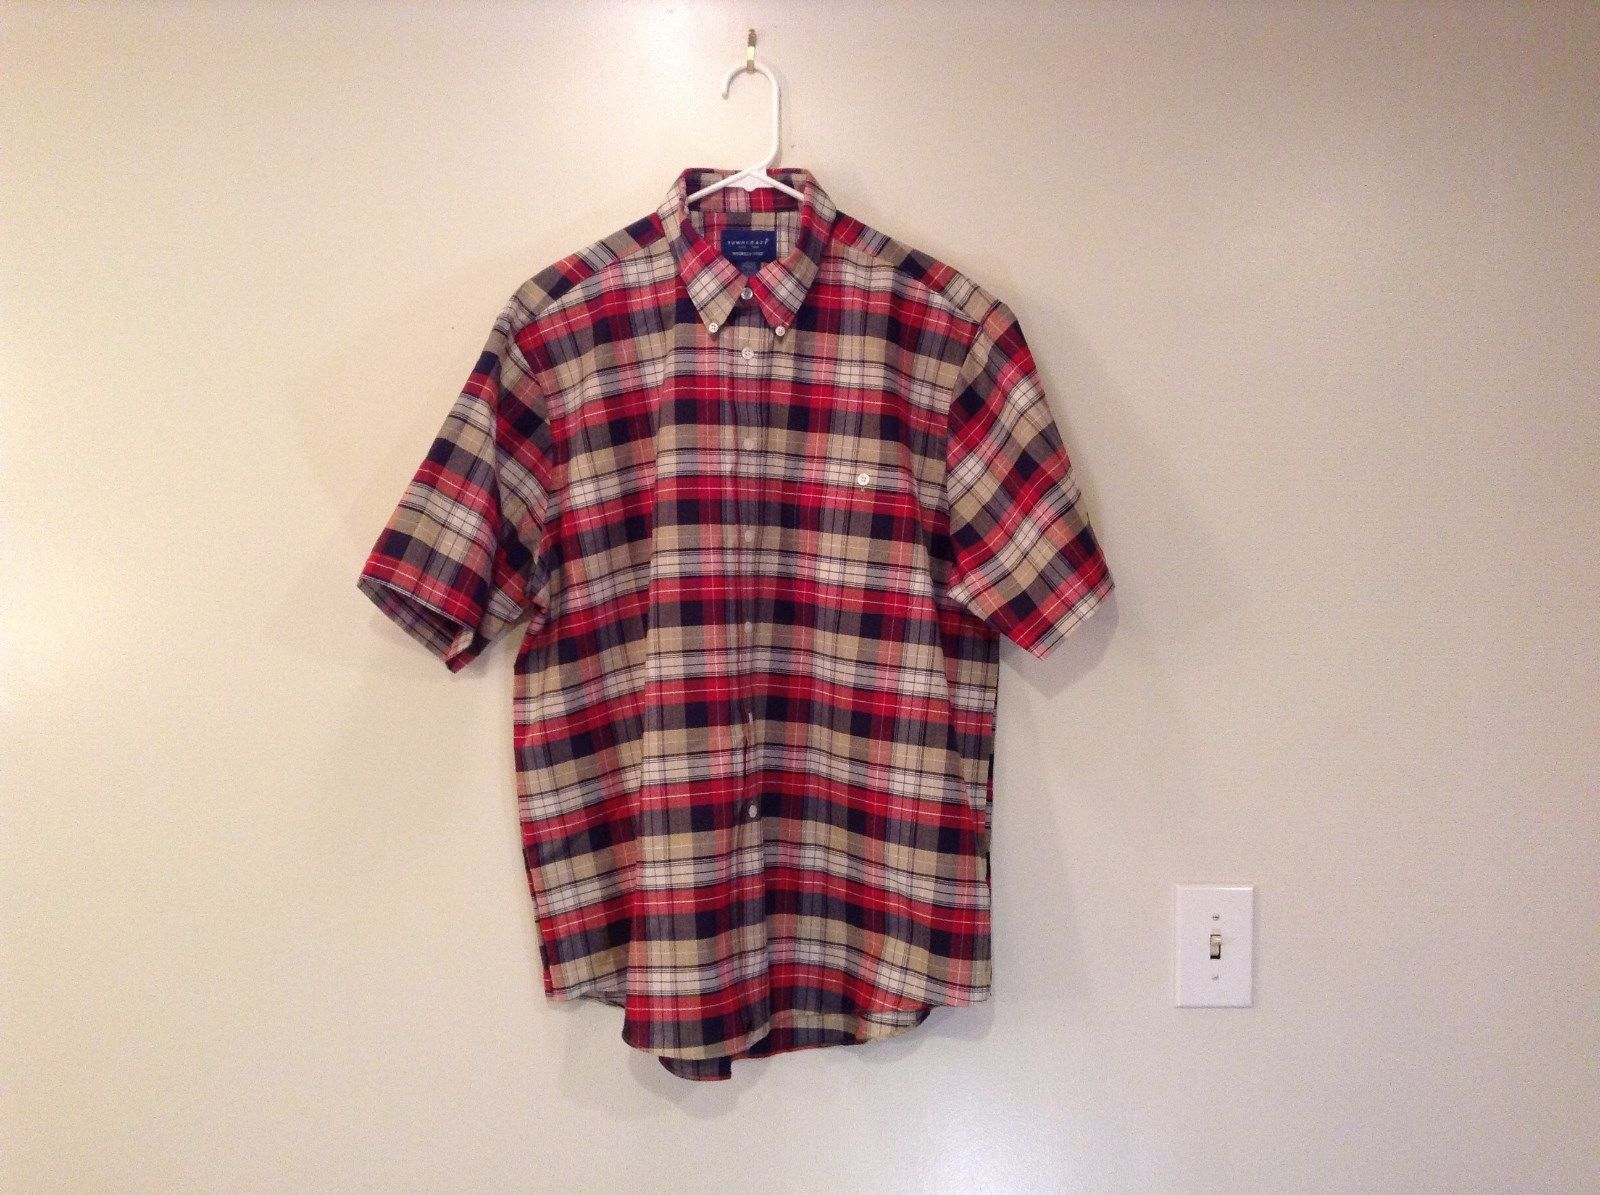 NEW Short Sleeve Towncraft Plaid Red Navy Blue White Beige Shirt Size Large